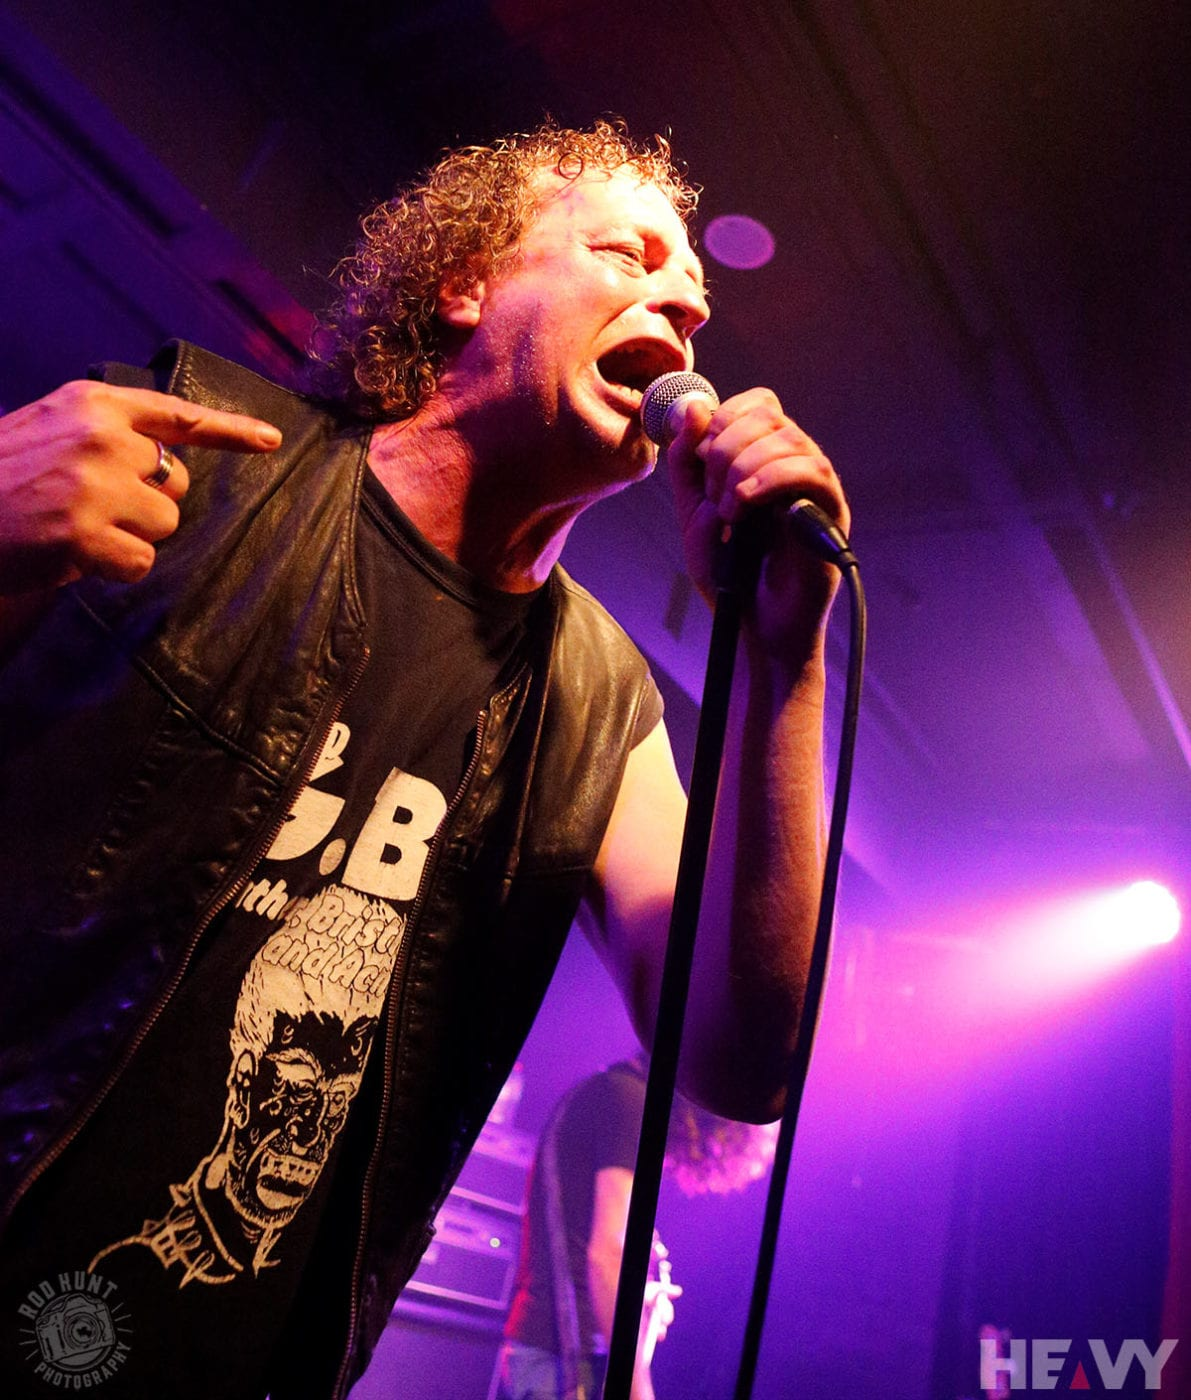 Photo of Voivod live in Sydney on January 26 2019 by Rod Hunt